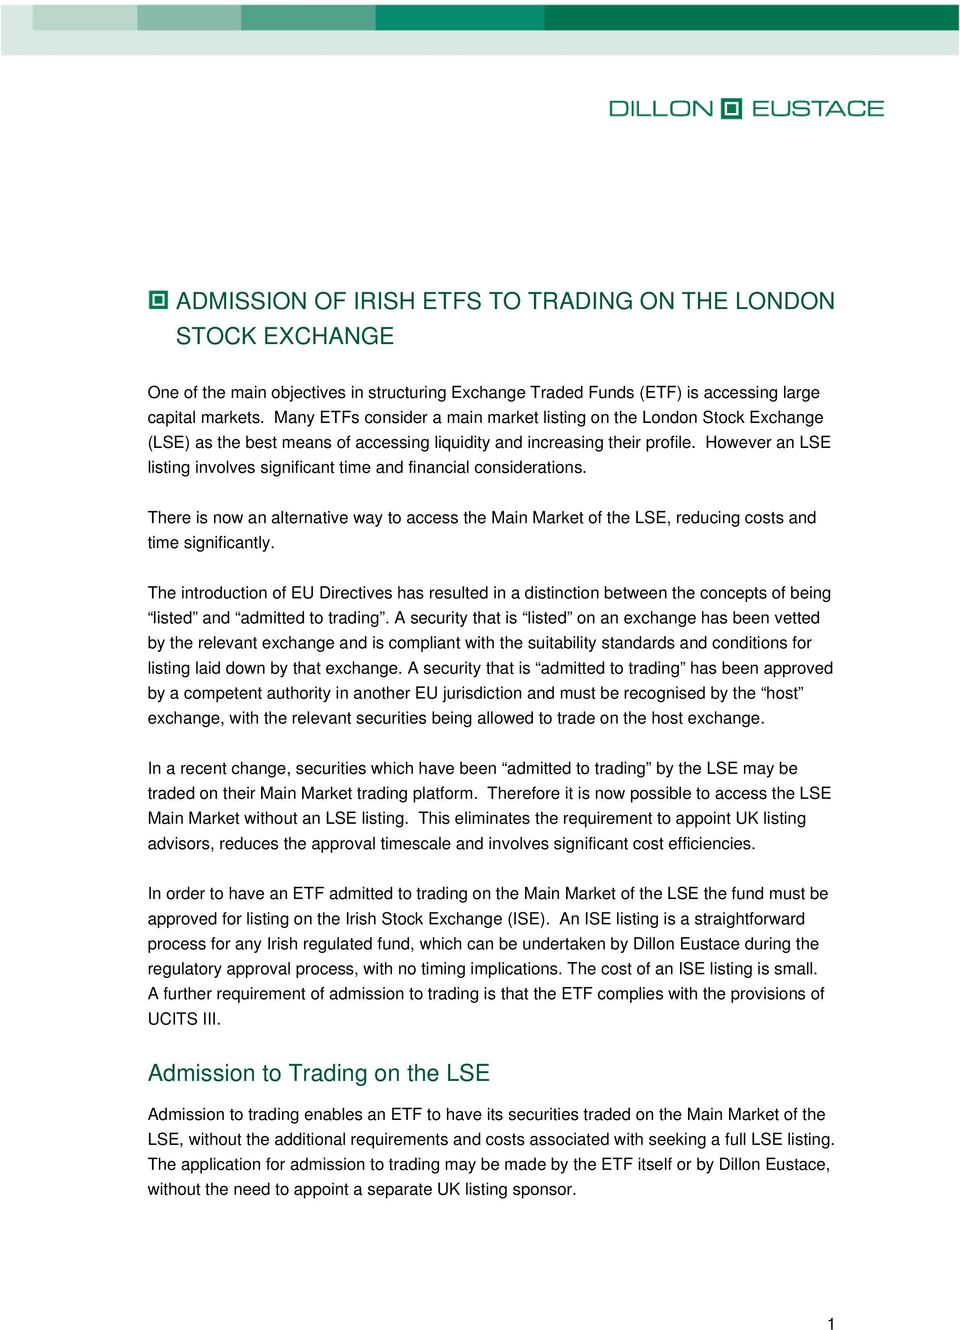 However an LSE listing involves significant time and financial considerations. There is now an alternative way to access the Main Market of the LSE, reducing costs and time significantly.